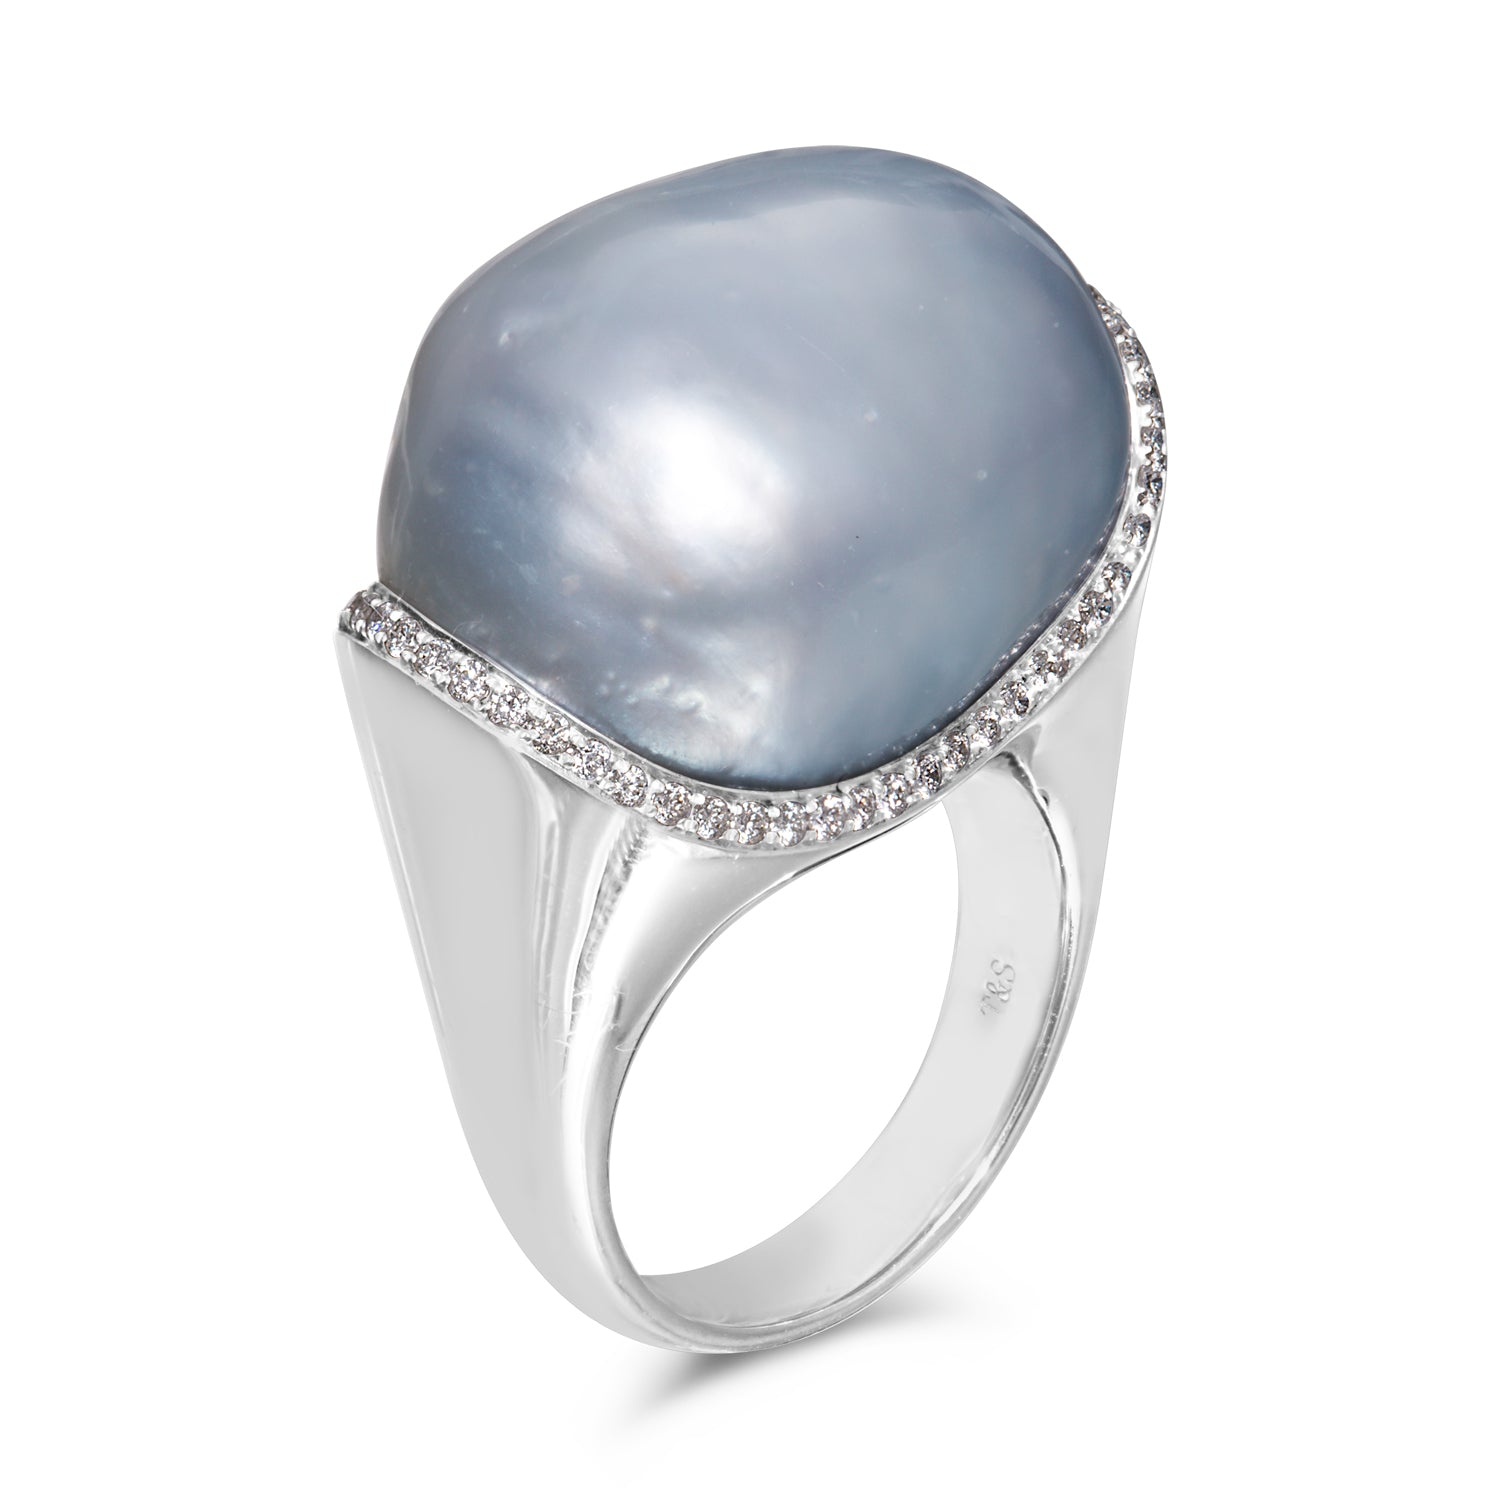 Museum 19-20mm  White South Sea Baroque Pearl and Diamond Ring